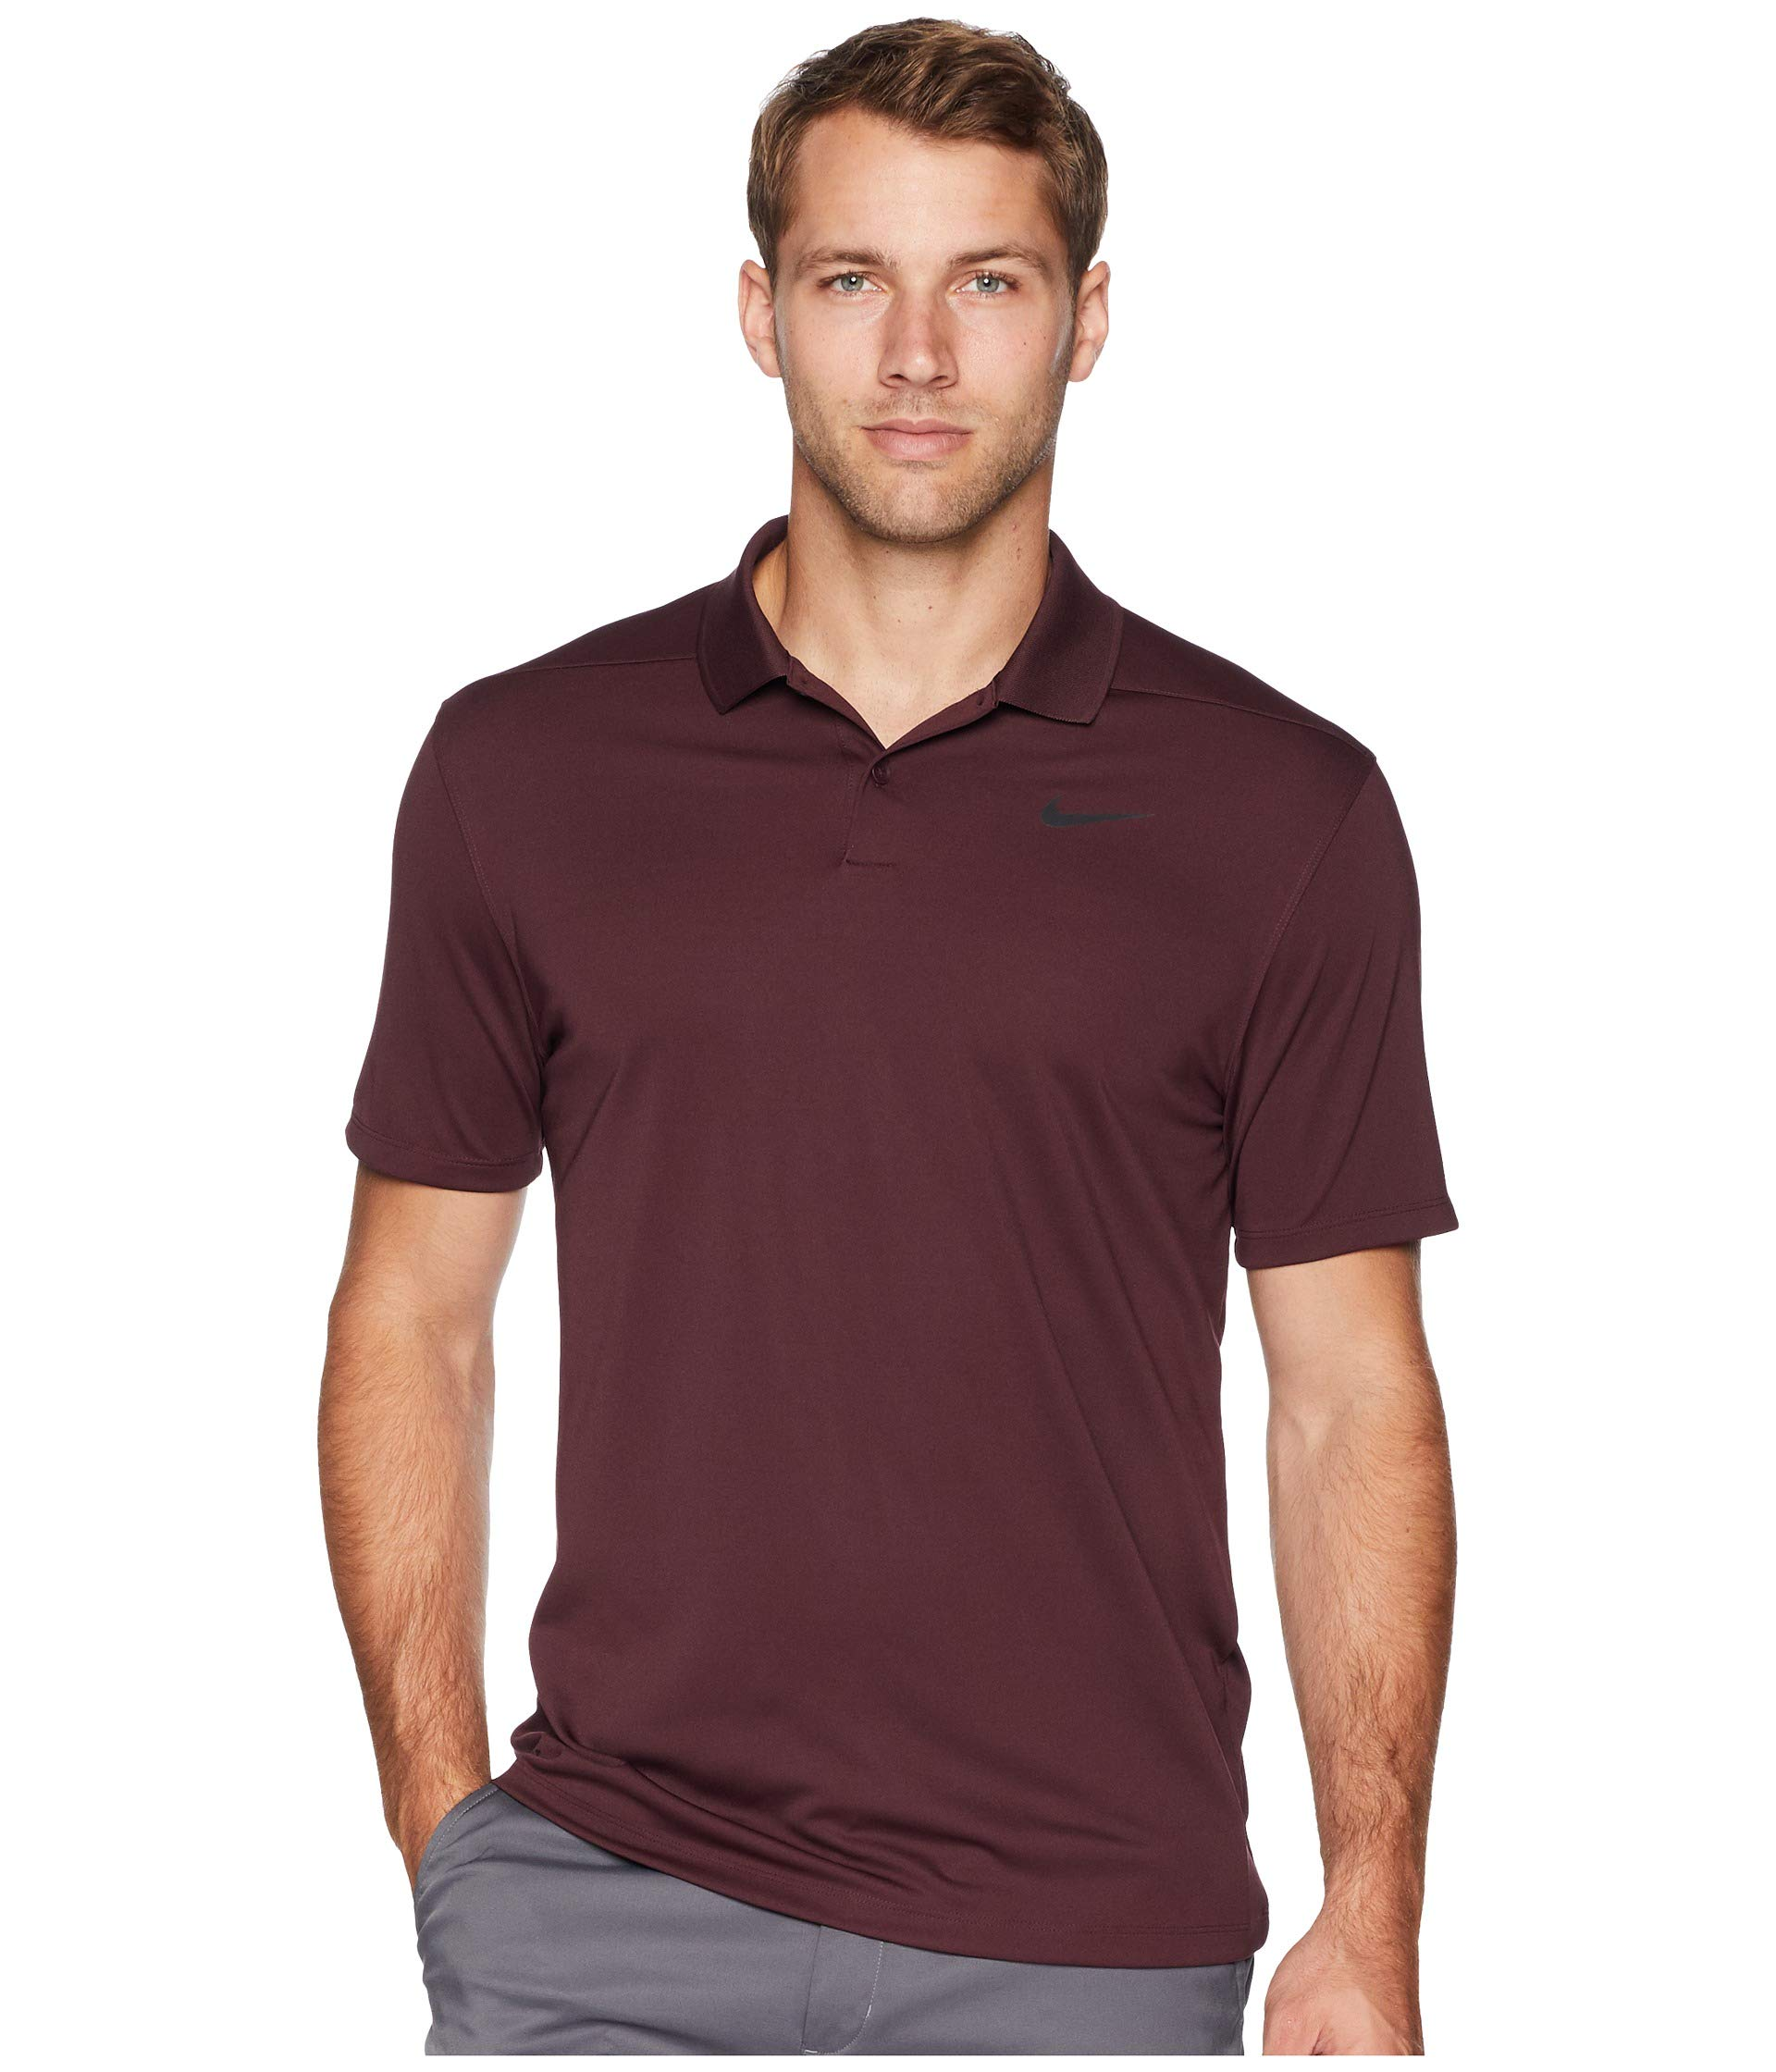 Nike Dri Fit Victory Solid LC Golf Polo 2019 Burgundy Crush/Black Small